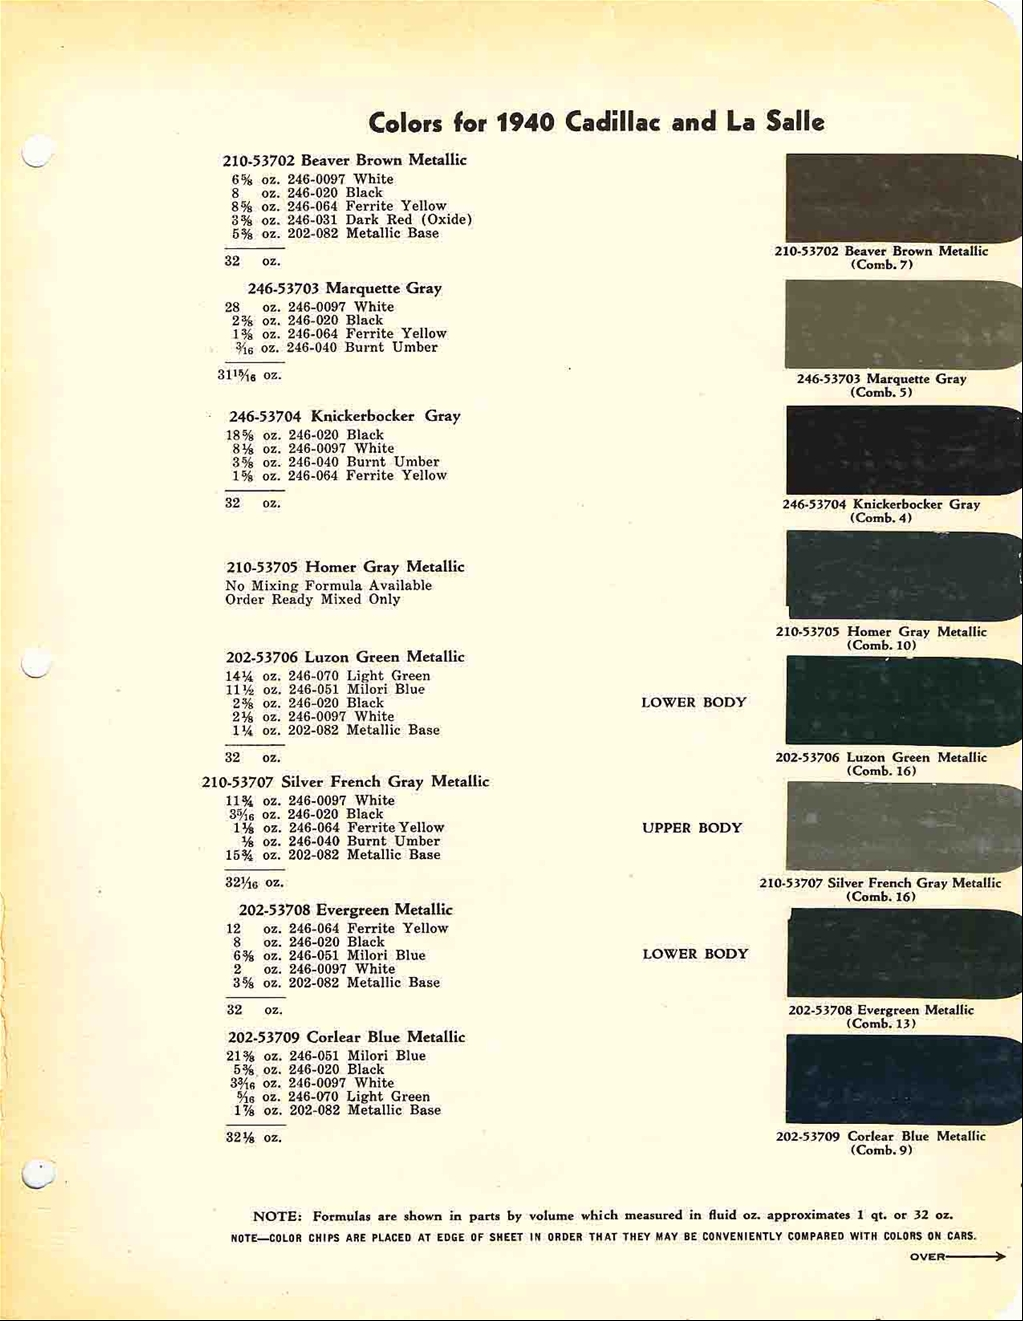 Official cadillac color names and paint codes archive cadillac official cadillac color names and paint codes archive cadillac forums cadillac owners forum nvjuhfo Choice Image